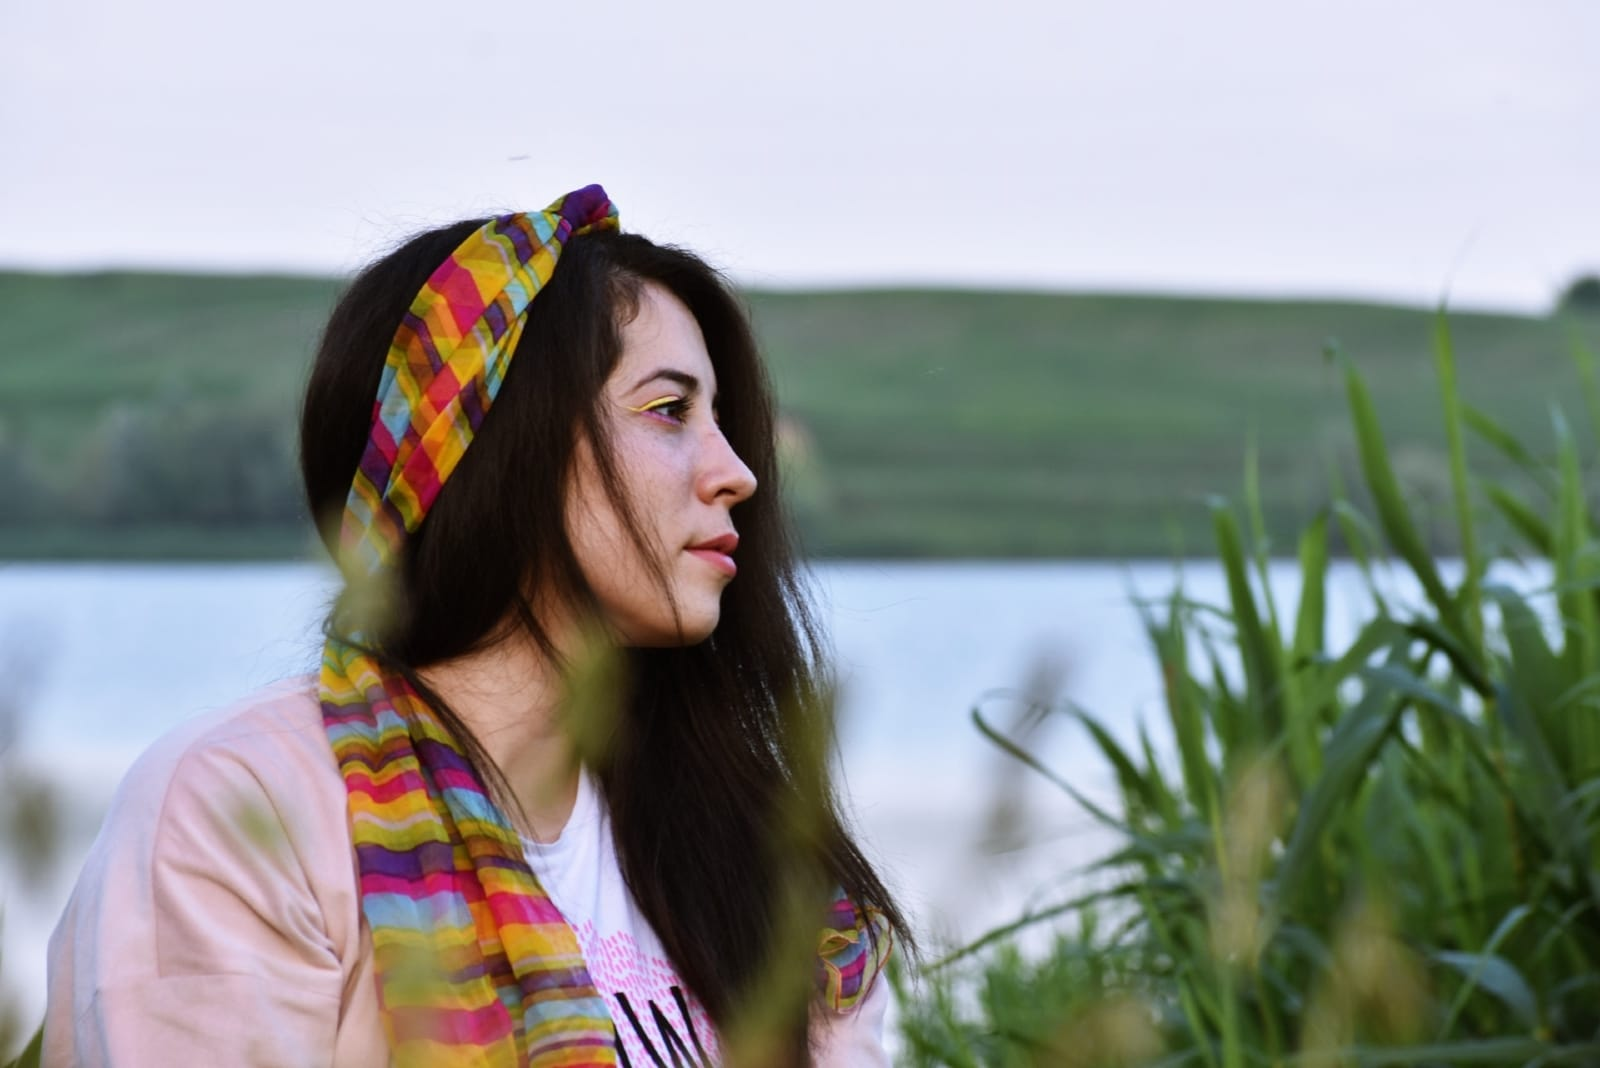 woman with colorful head scarf sitting near water